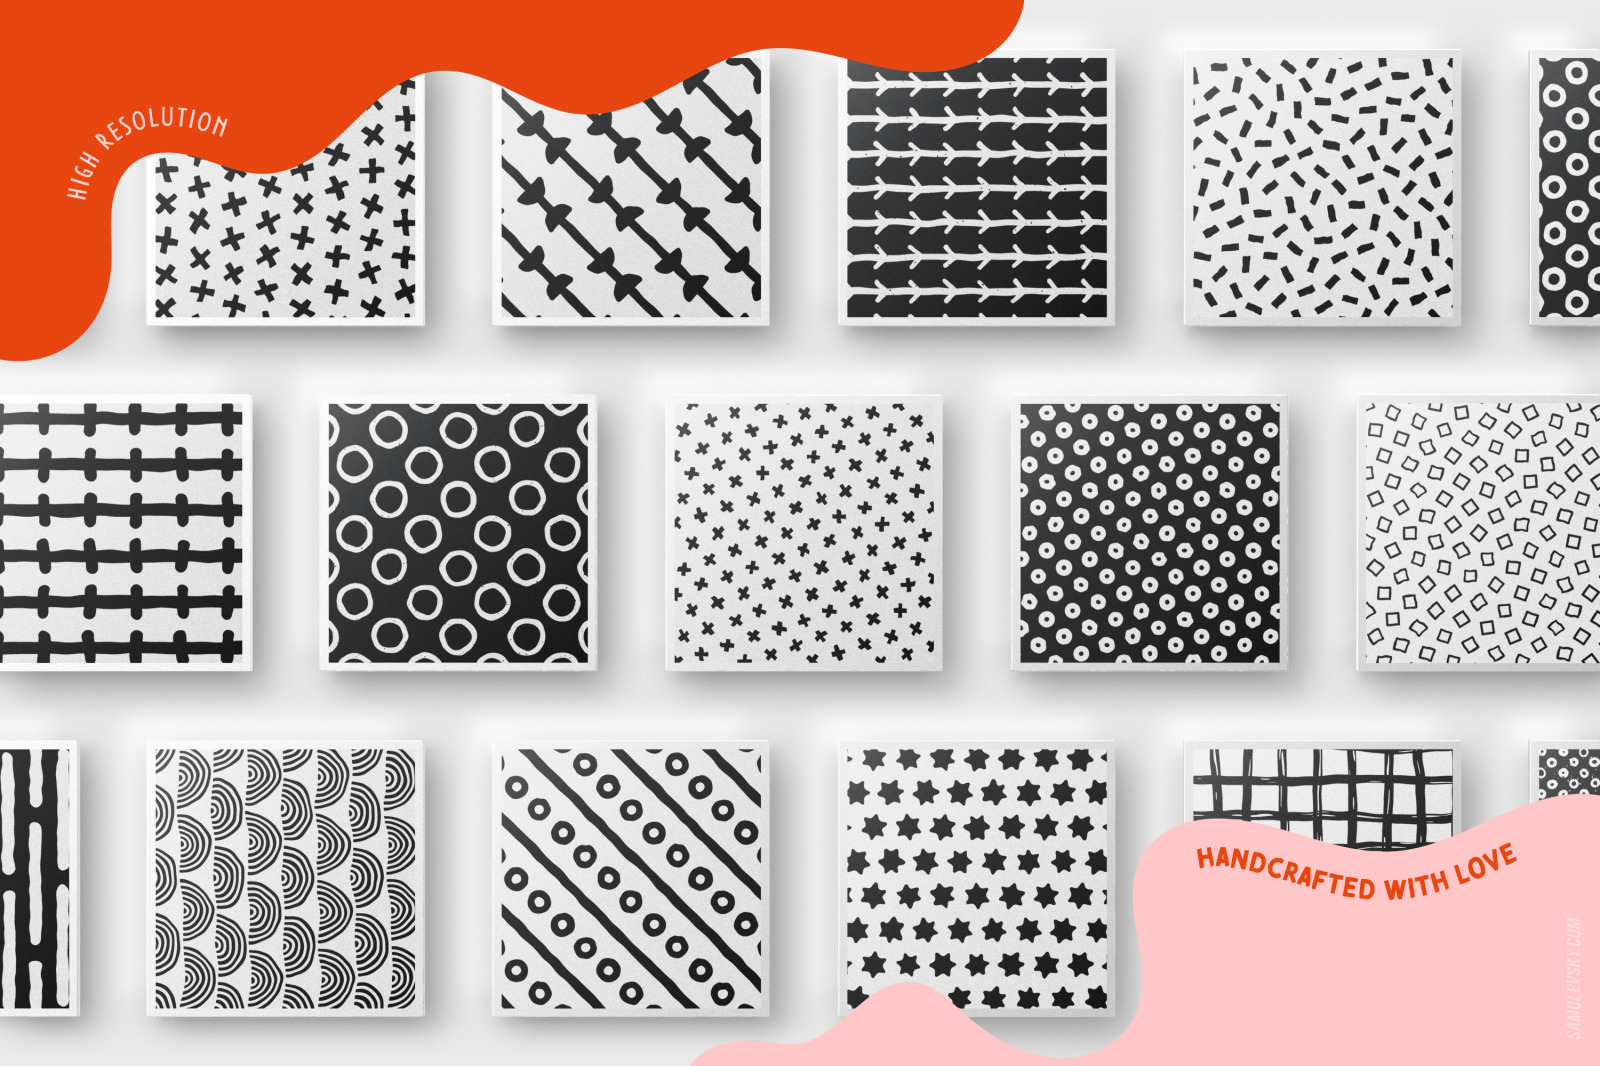 Handmade patterns bundle - 300 seamless patterns, brushes, and shapes